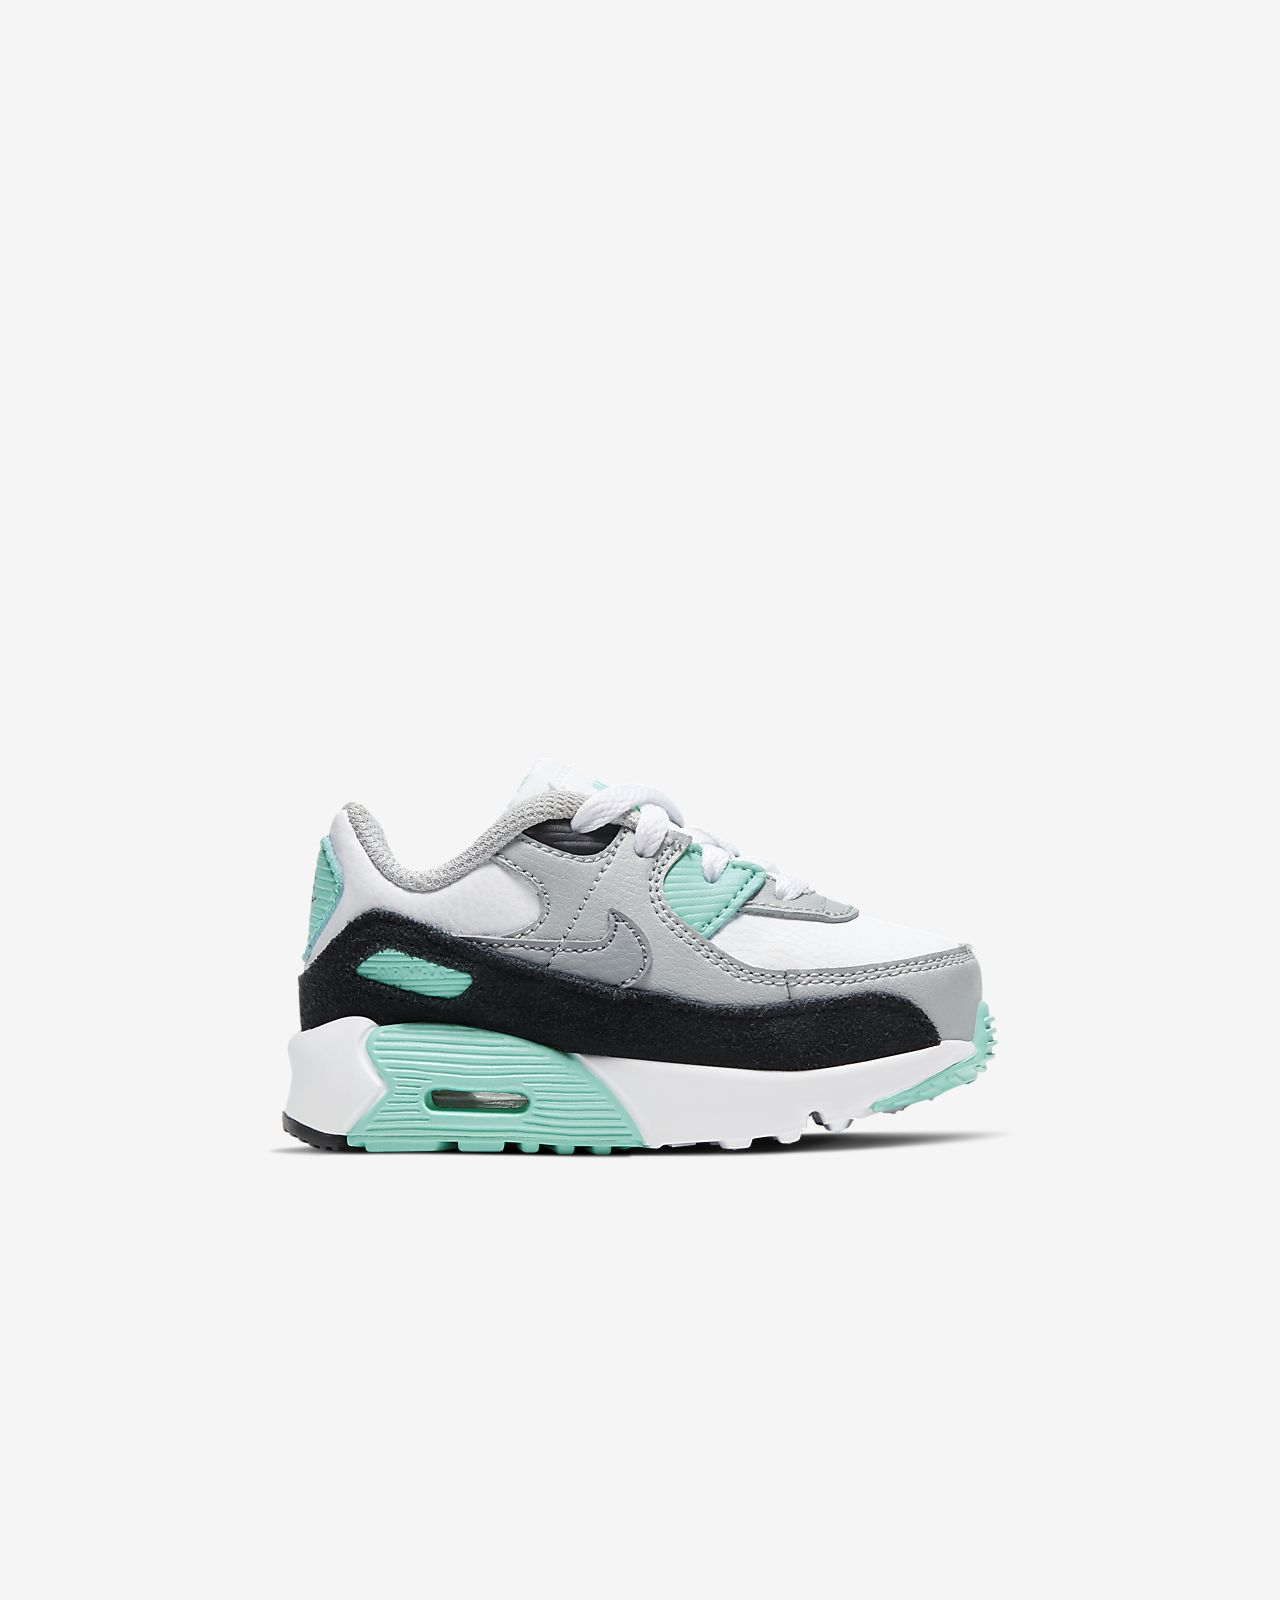 Nike Air Max 90 LTR Baby & Toddler Shoe. (BE